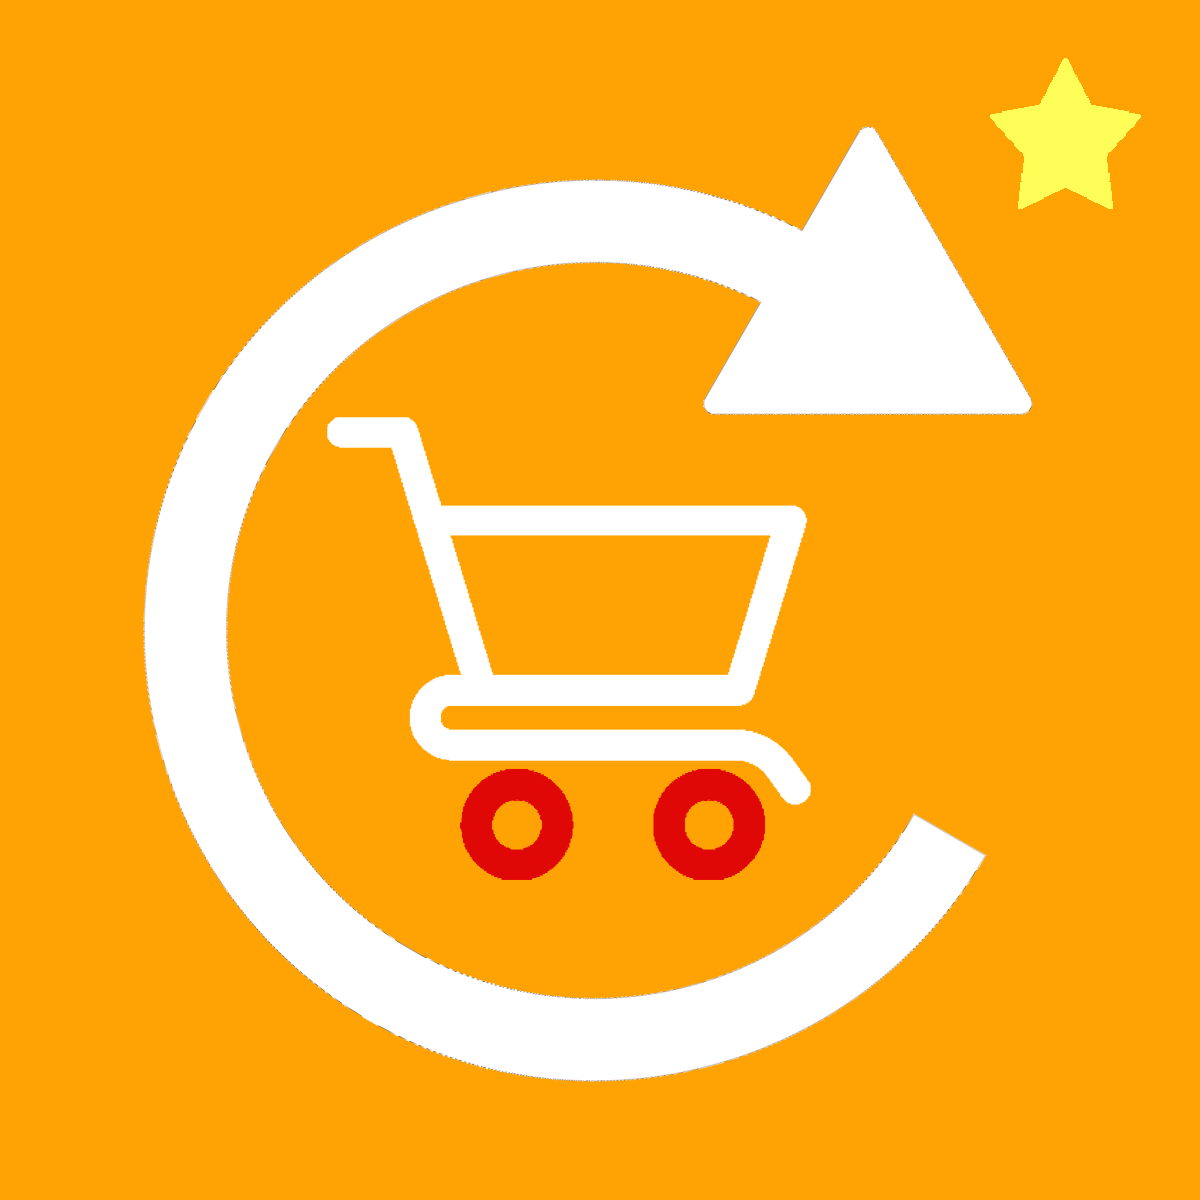 Hire Shopify Experts to integrate Abandoned Cart Recovery Email app into a Shopify store